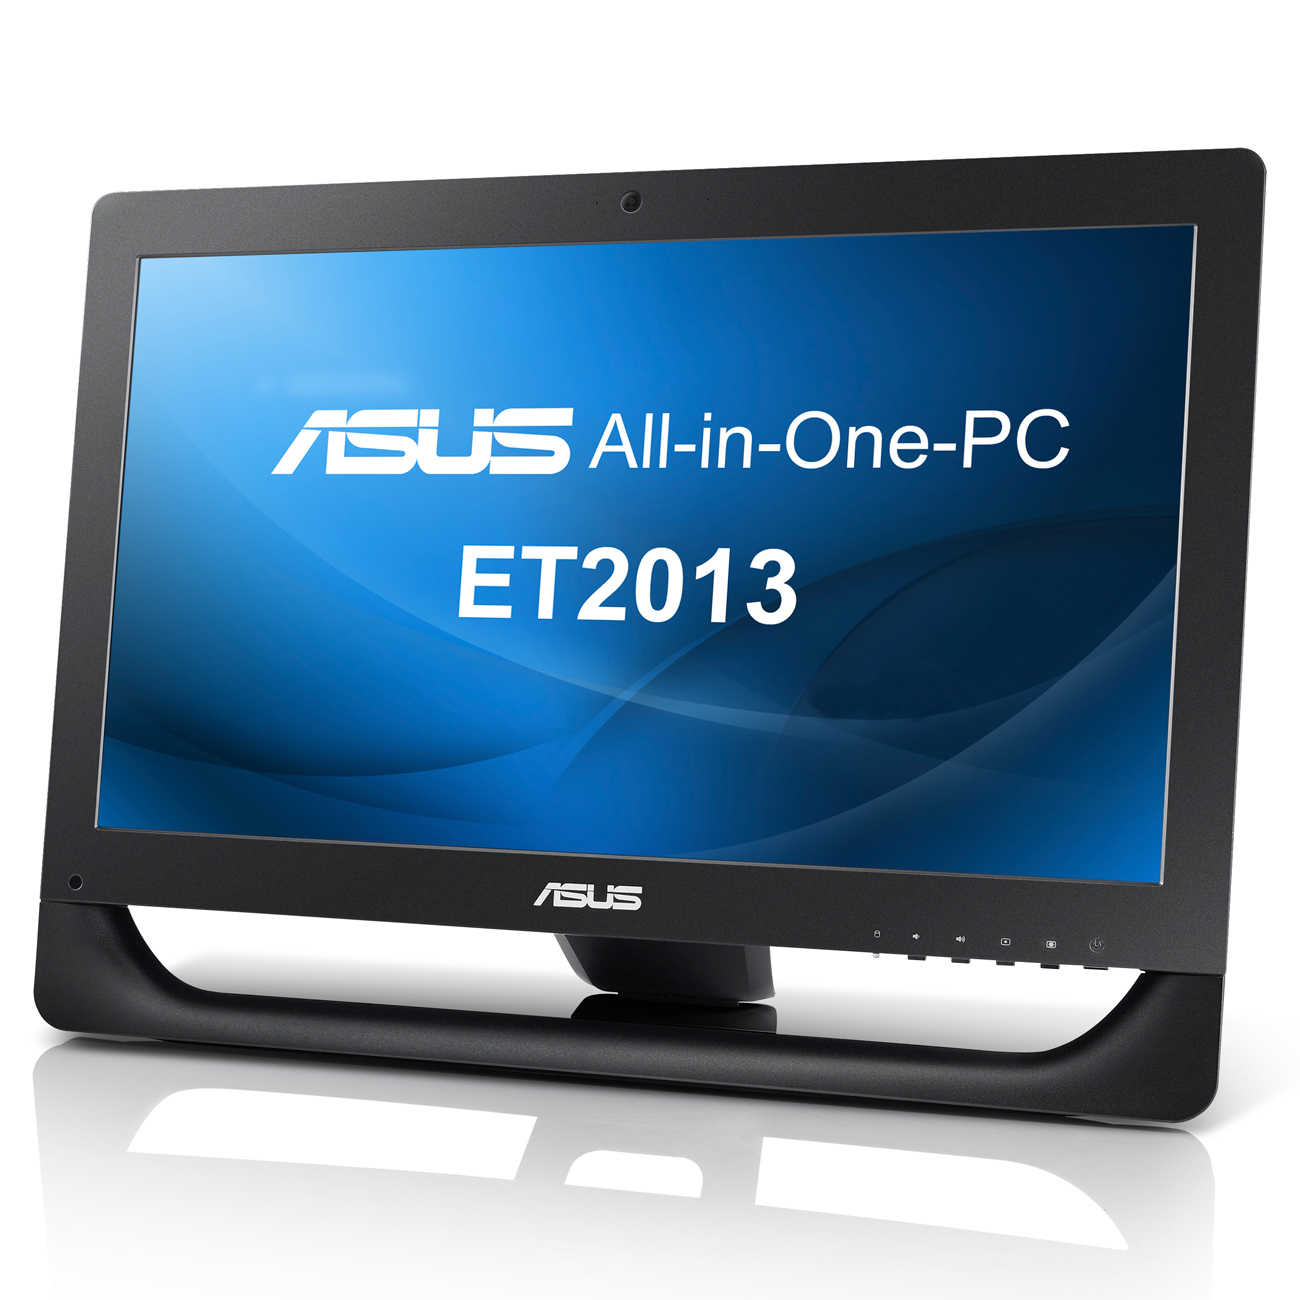 "ASUS All-in-One PC ET2013IUTI-B003E Noir Intel Pentium G645 4 Go 500 Go LED  20"" Tactile Graveur DVD Wi-Fi N Windows 7 Professionnel 64 bits"